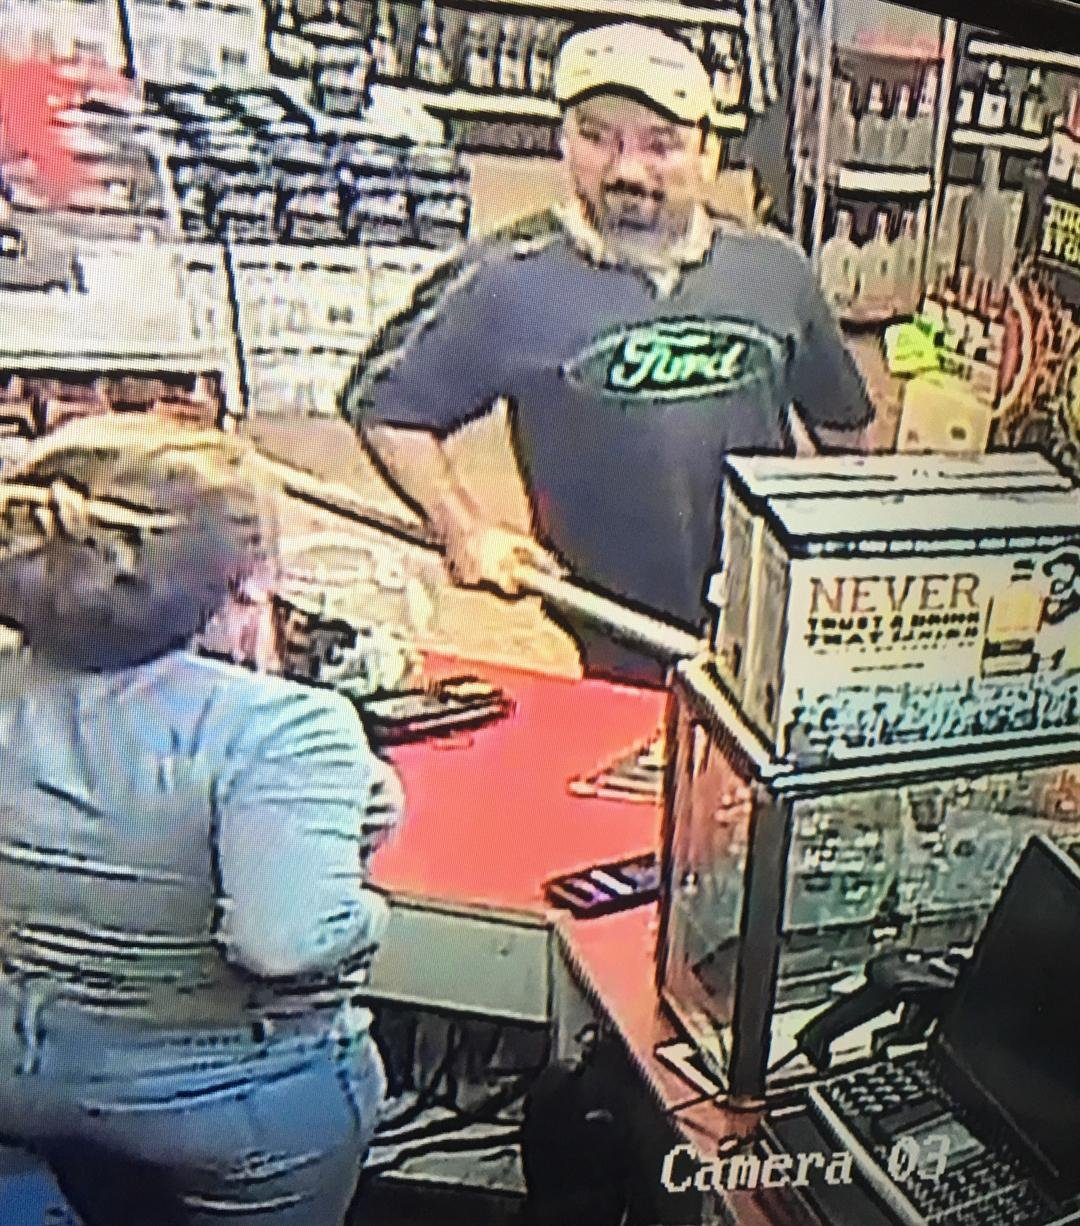 Police are looking for this man who attempted to rob Toddy Shoppe liquor armed with a pipe Saturday night.